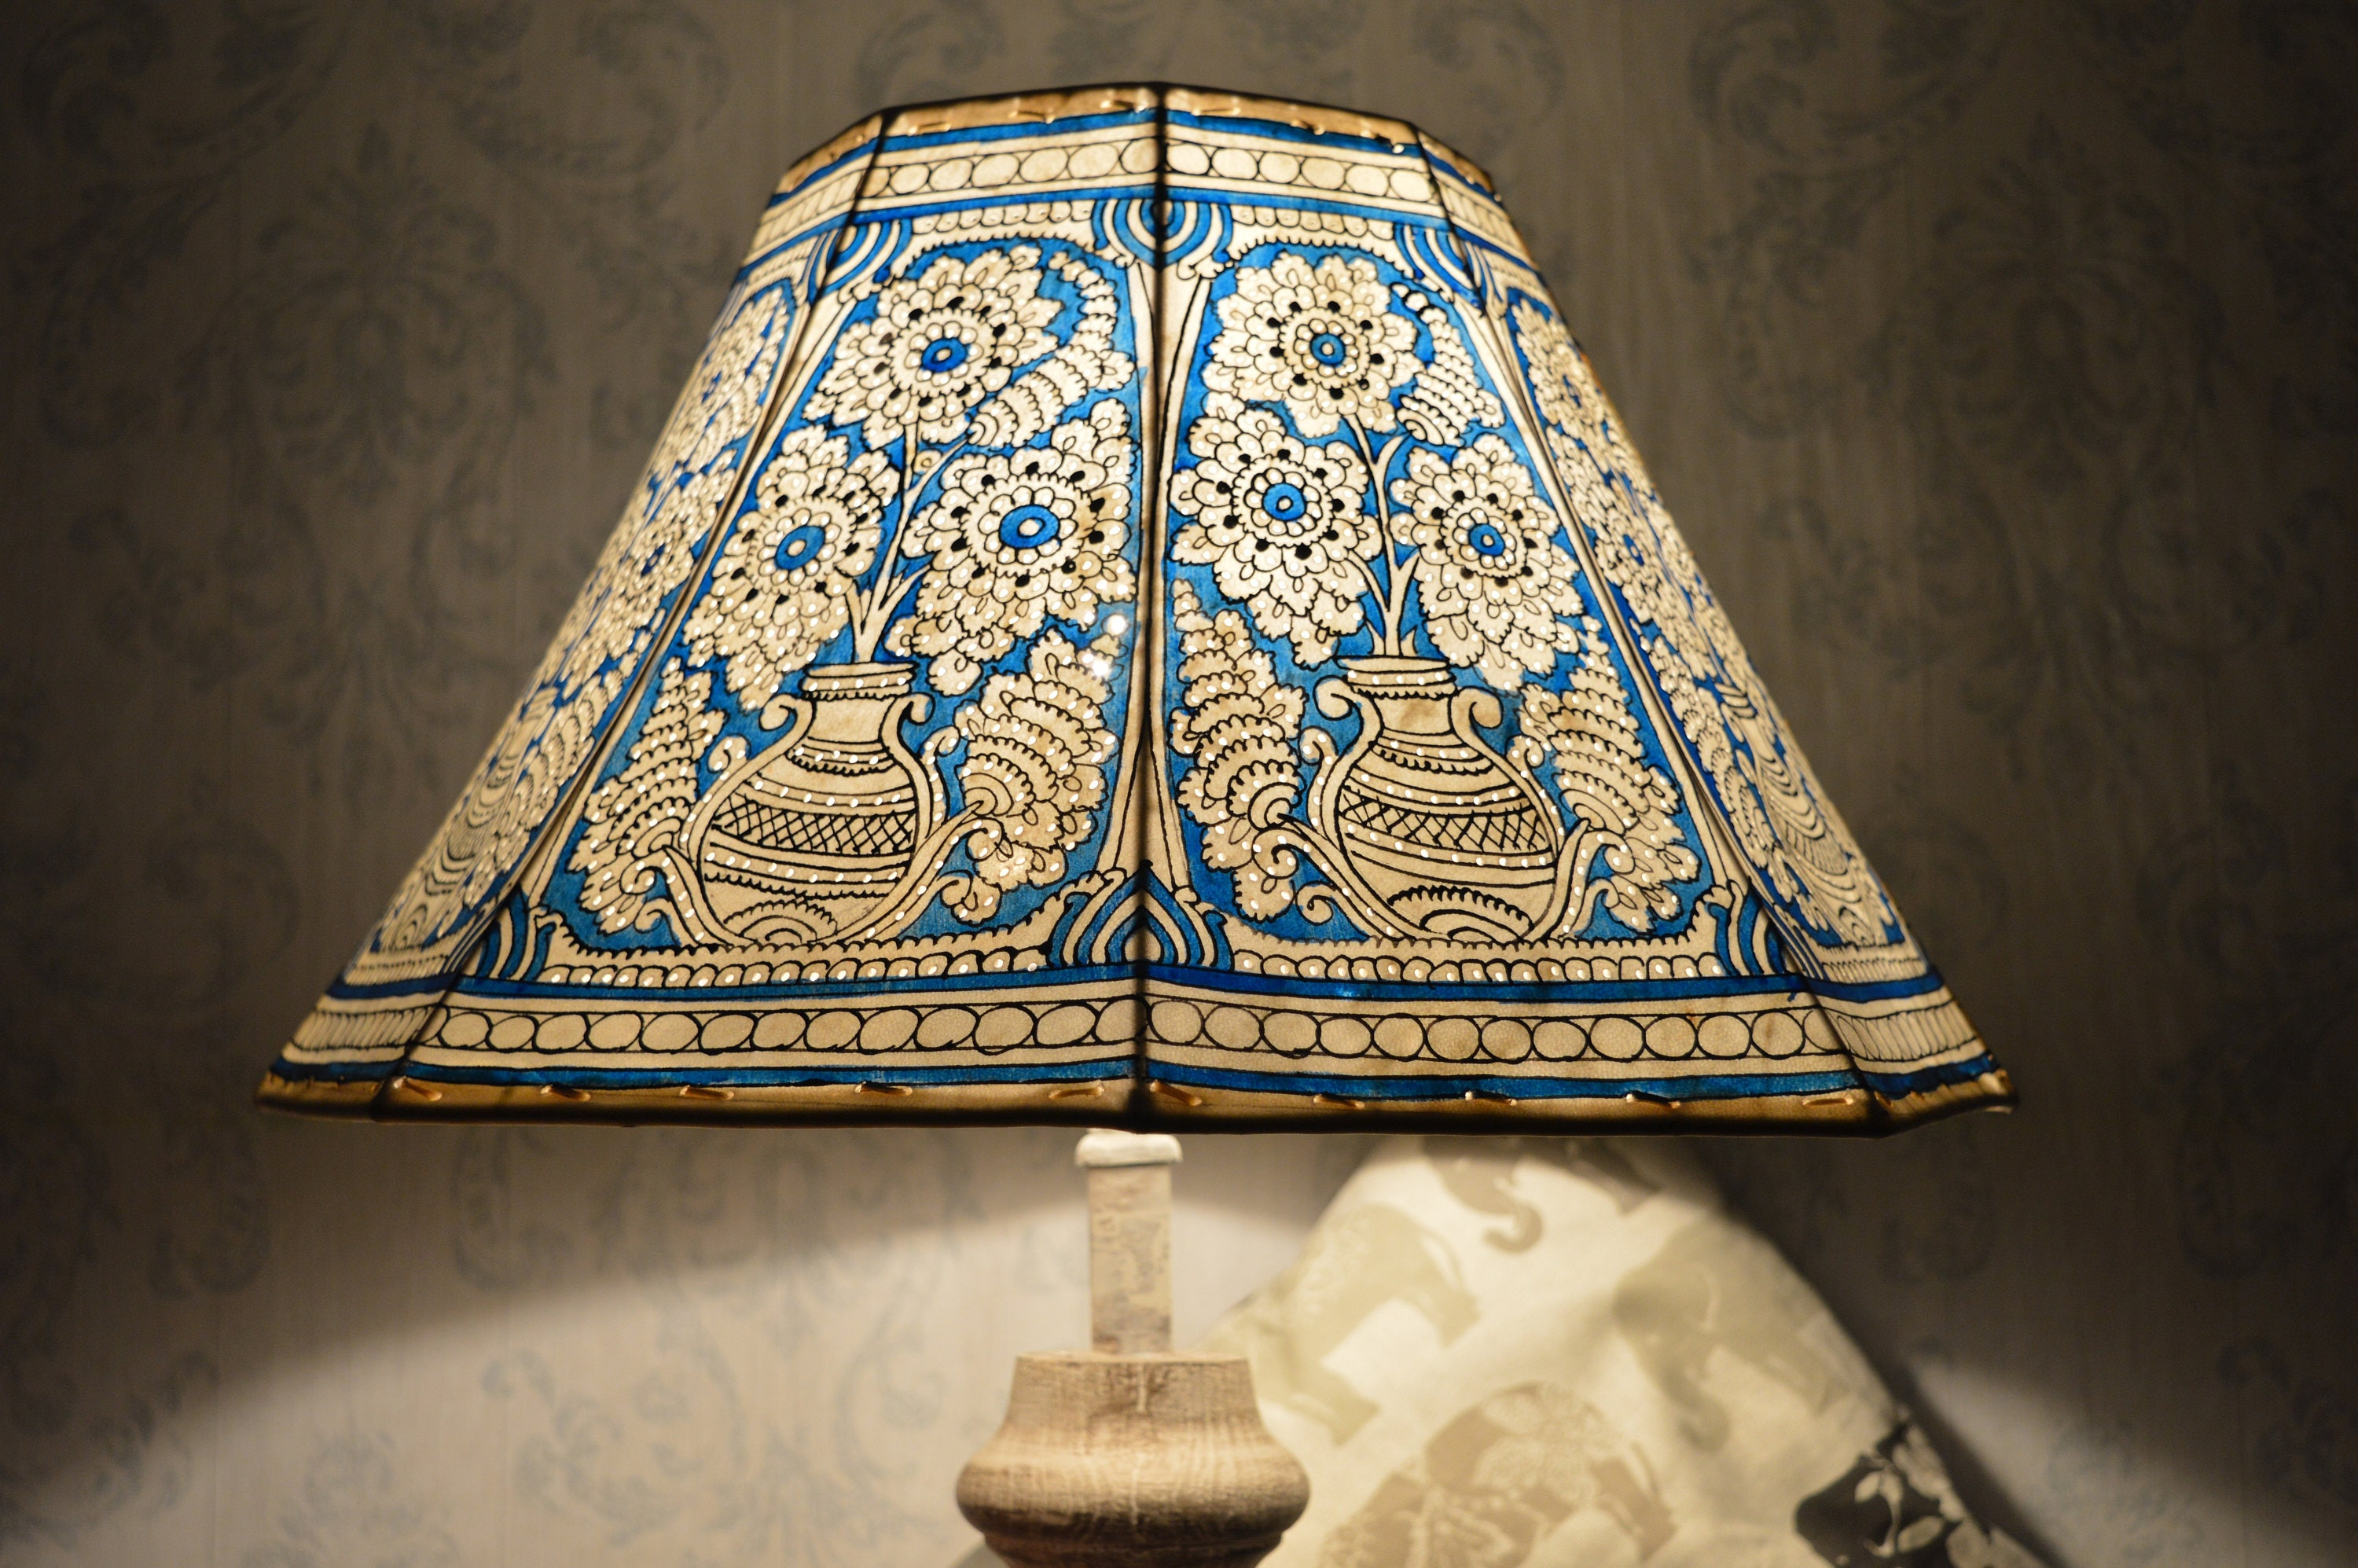 leather indian ekrafts initiative decors home sustainability lamp roung for nabard shade artisan round india big shades